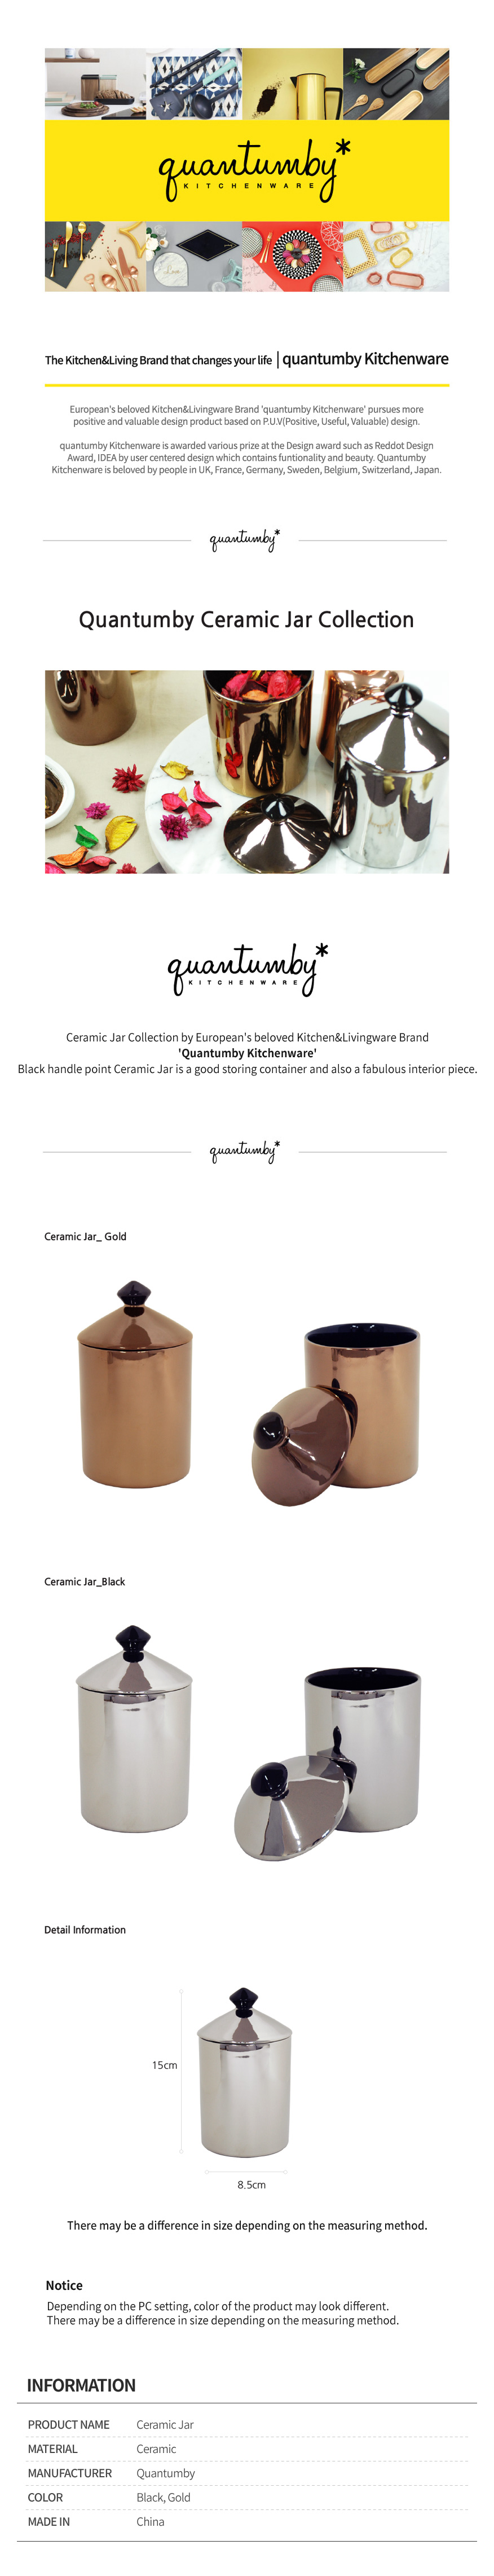 [Quantumby] Ceramic jar Gold/Black